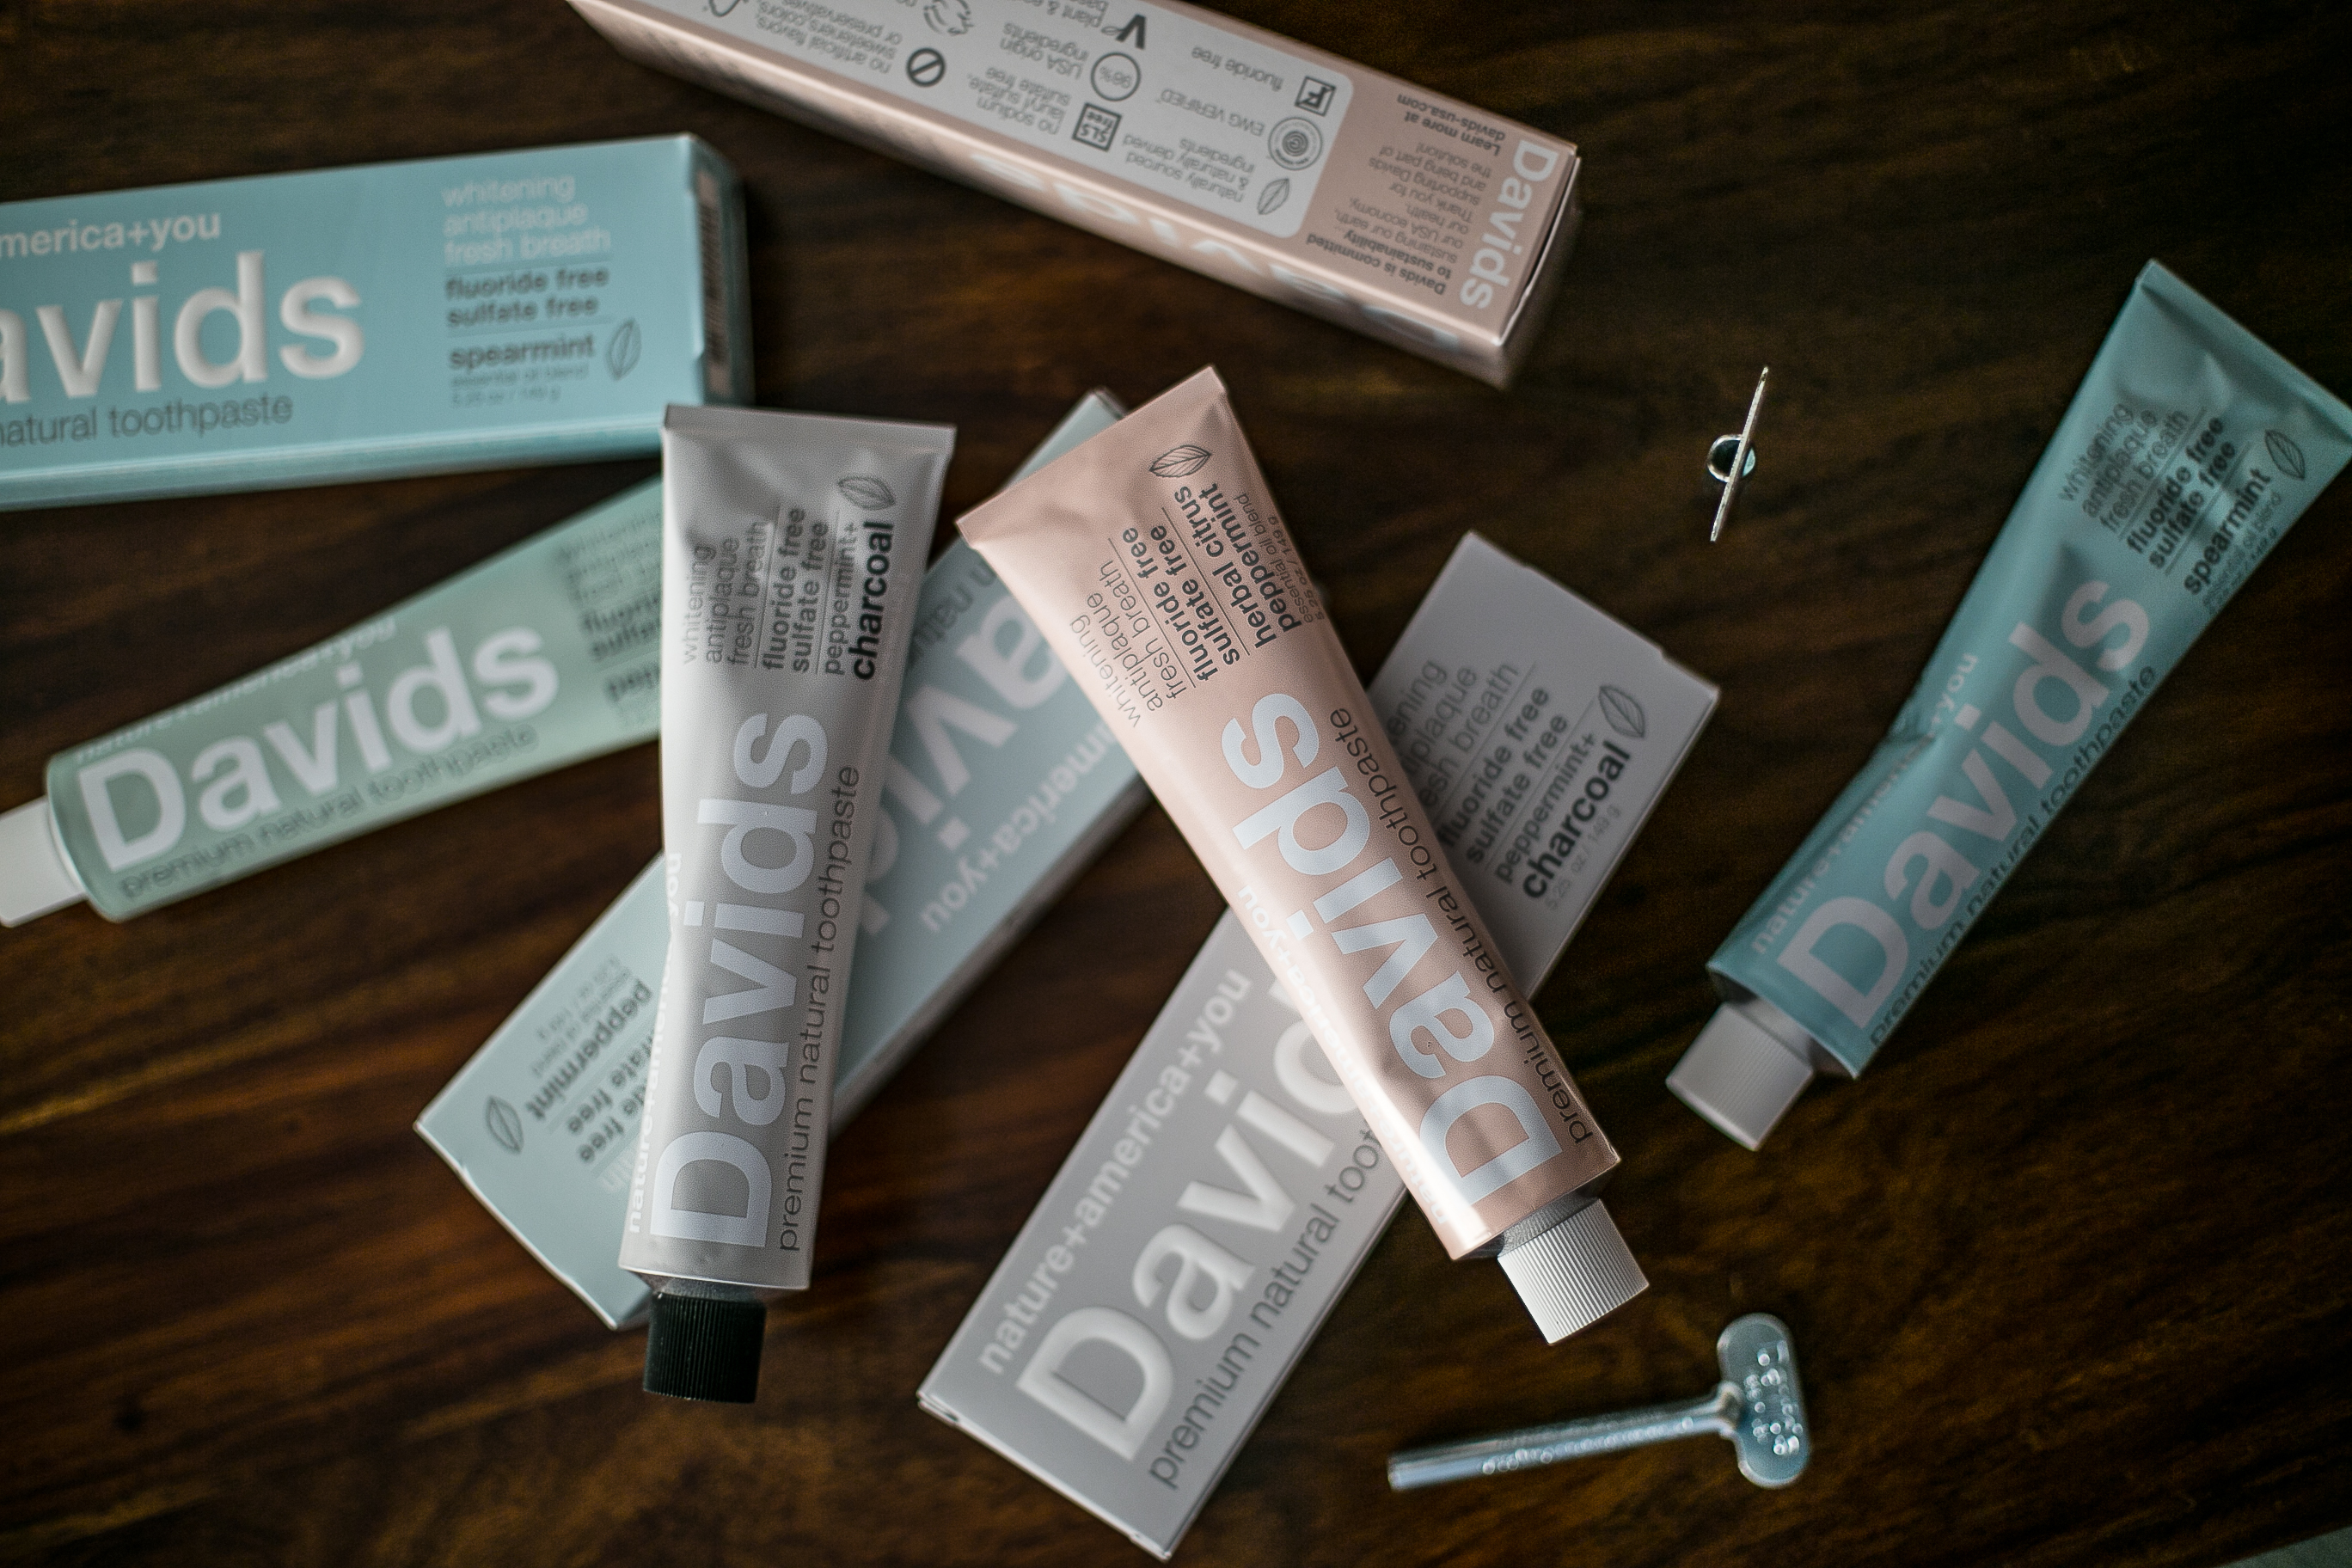 davids toothpaste review